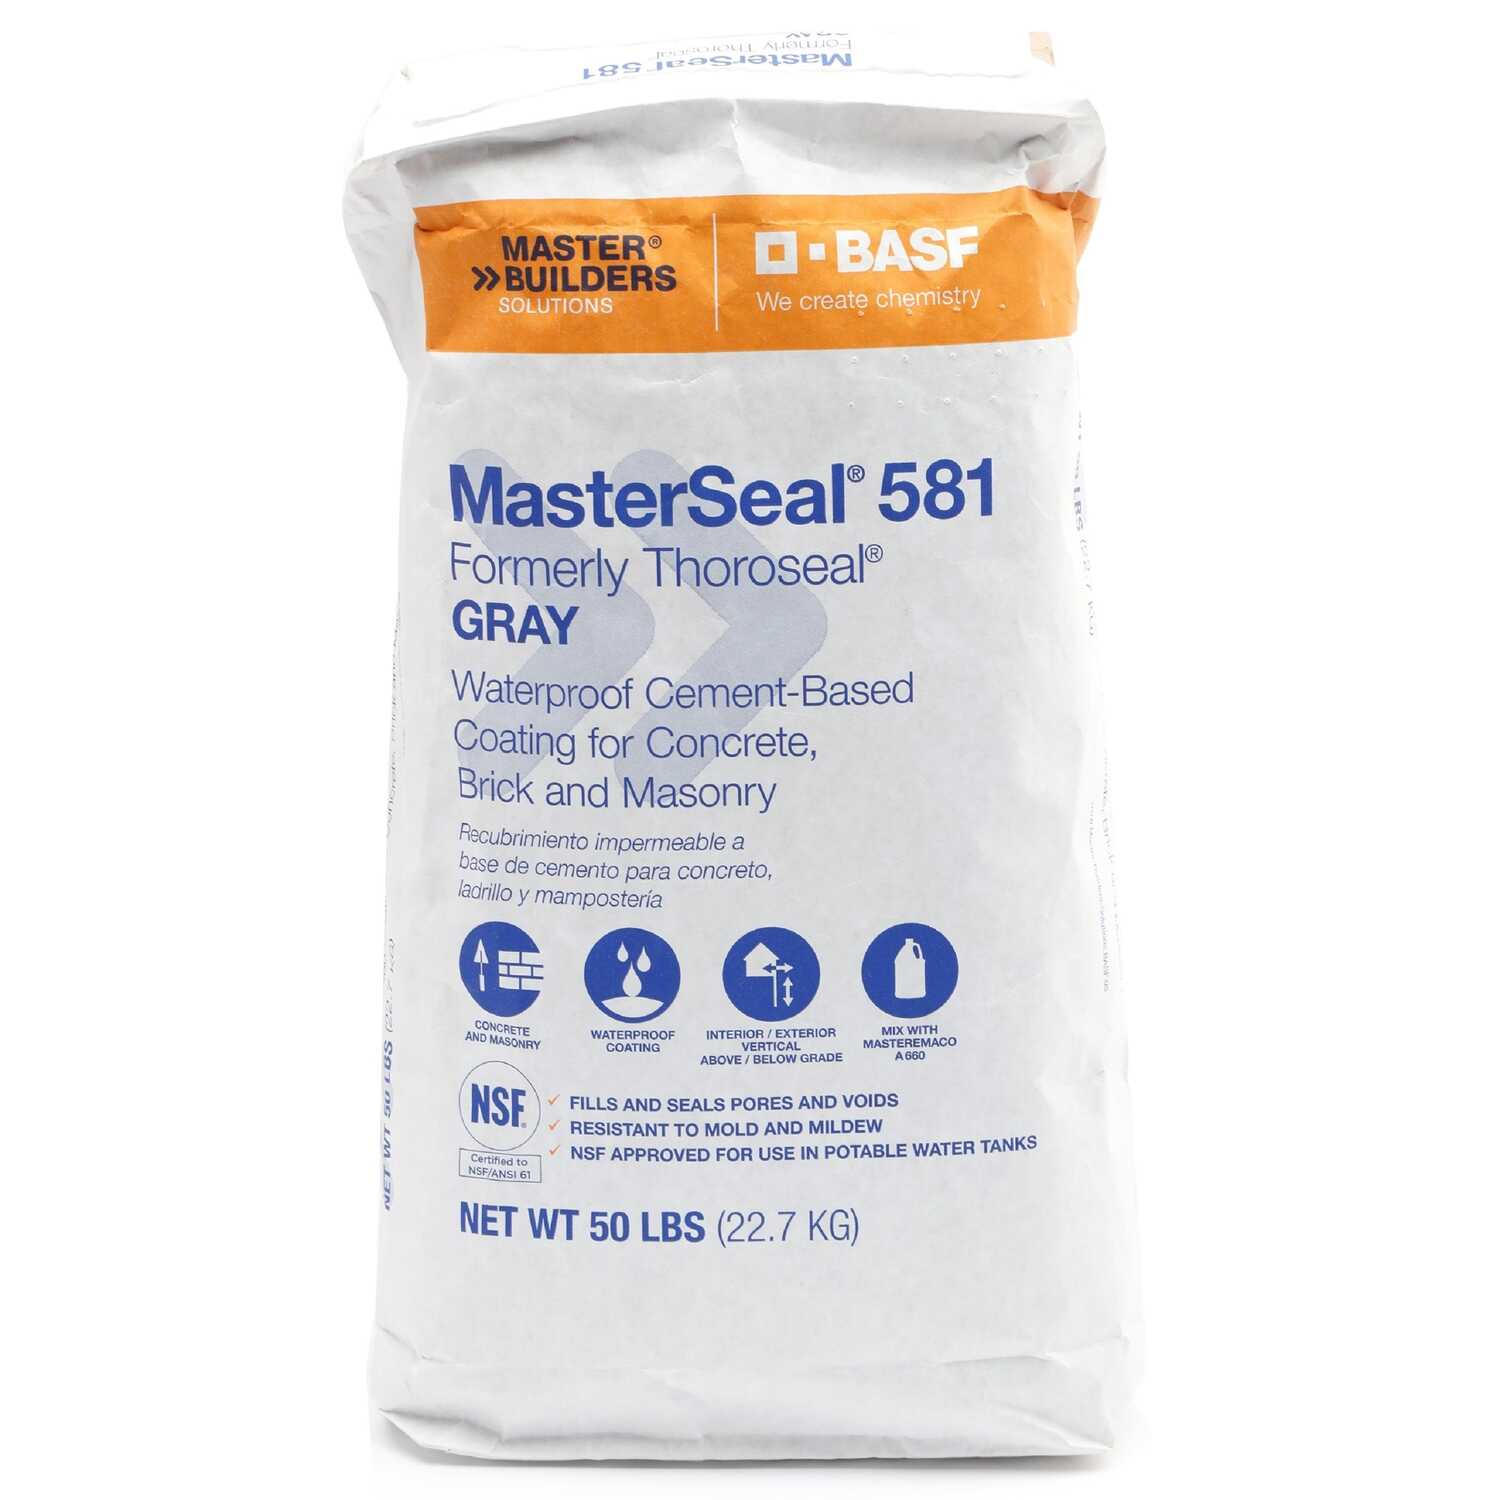 Thoro  Thoroseal  Gray  Cement-Based  Waterproof Coating  50 lb.